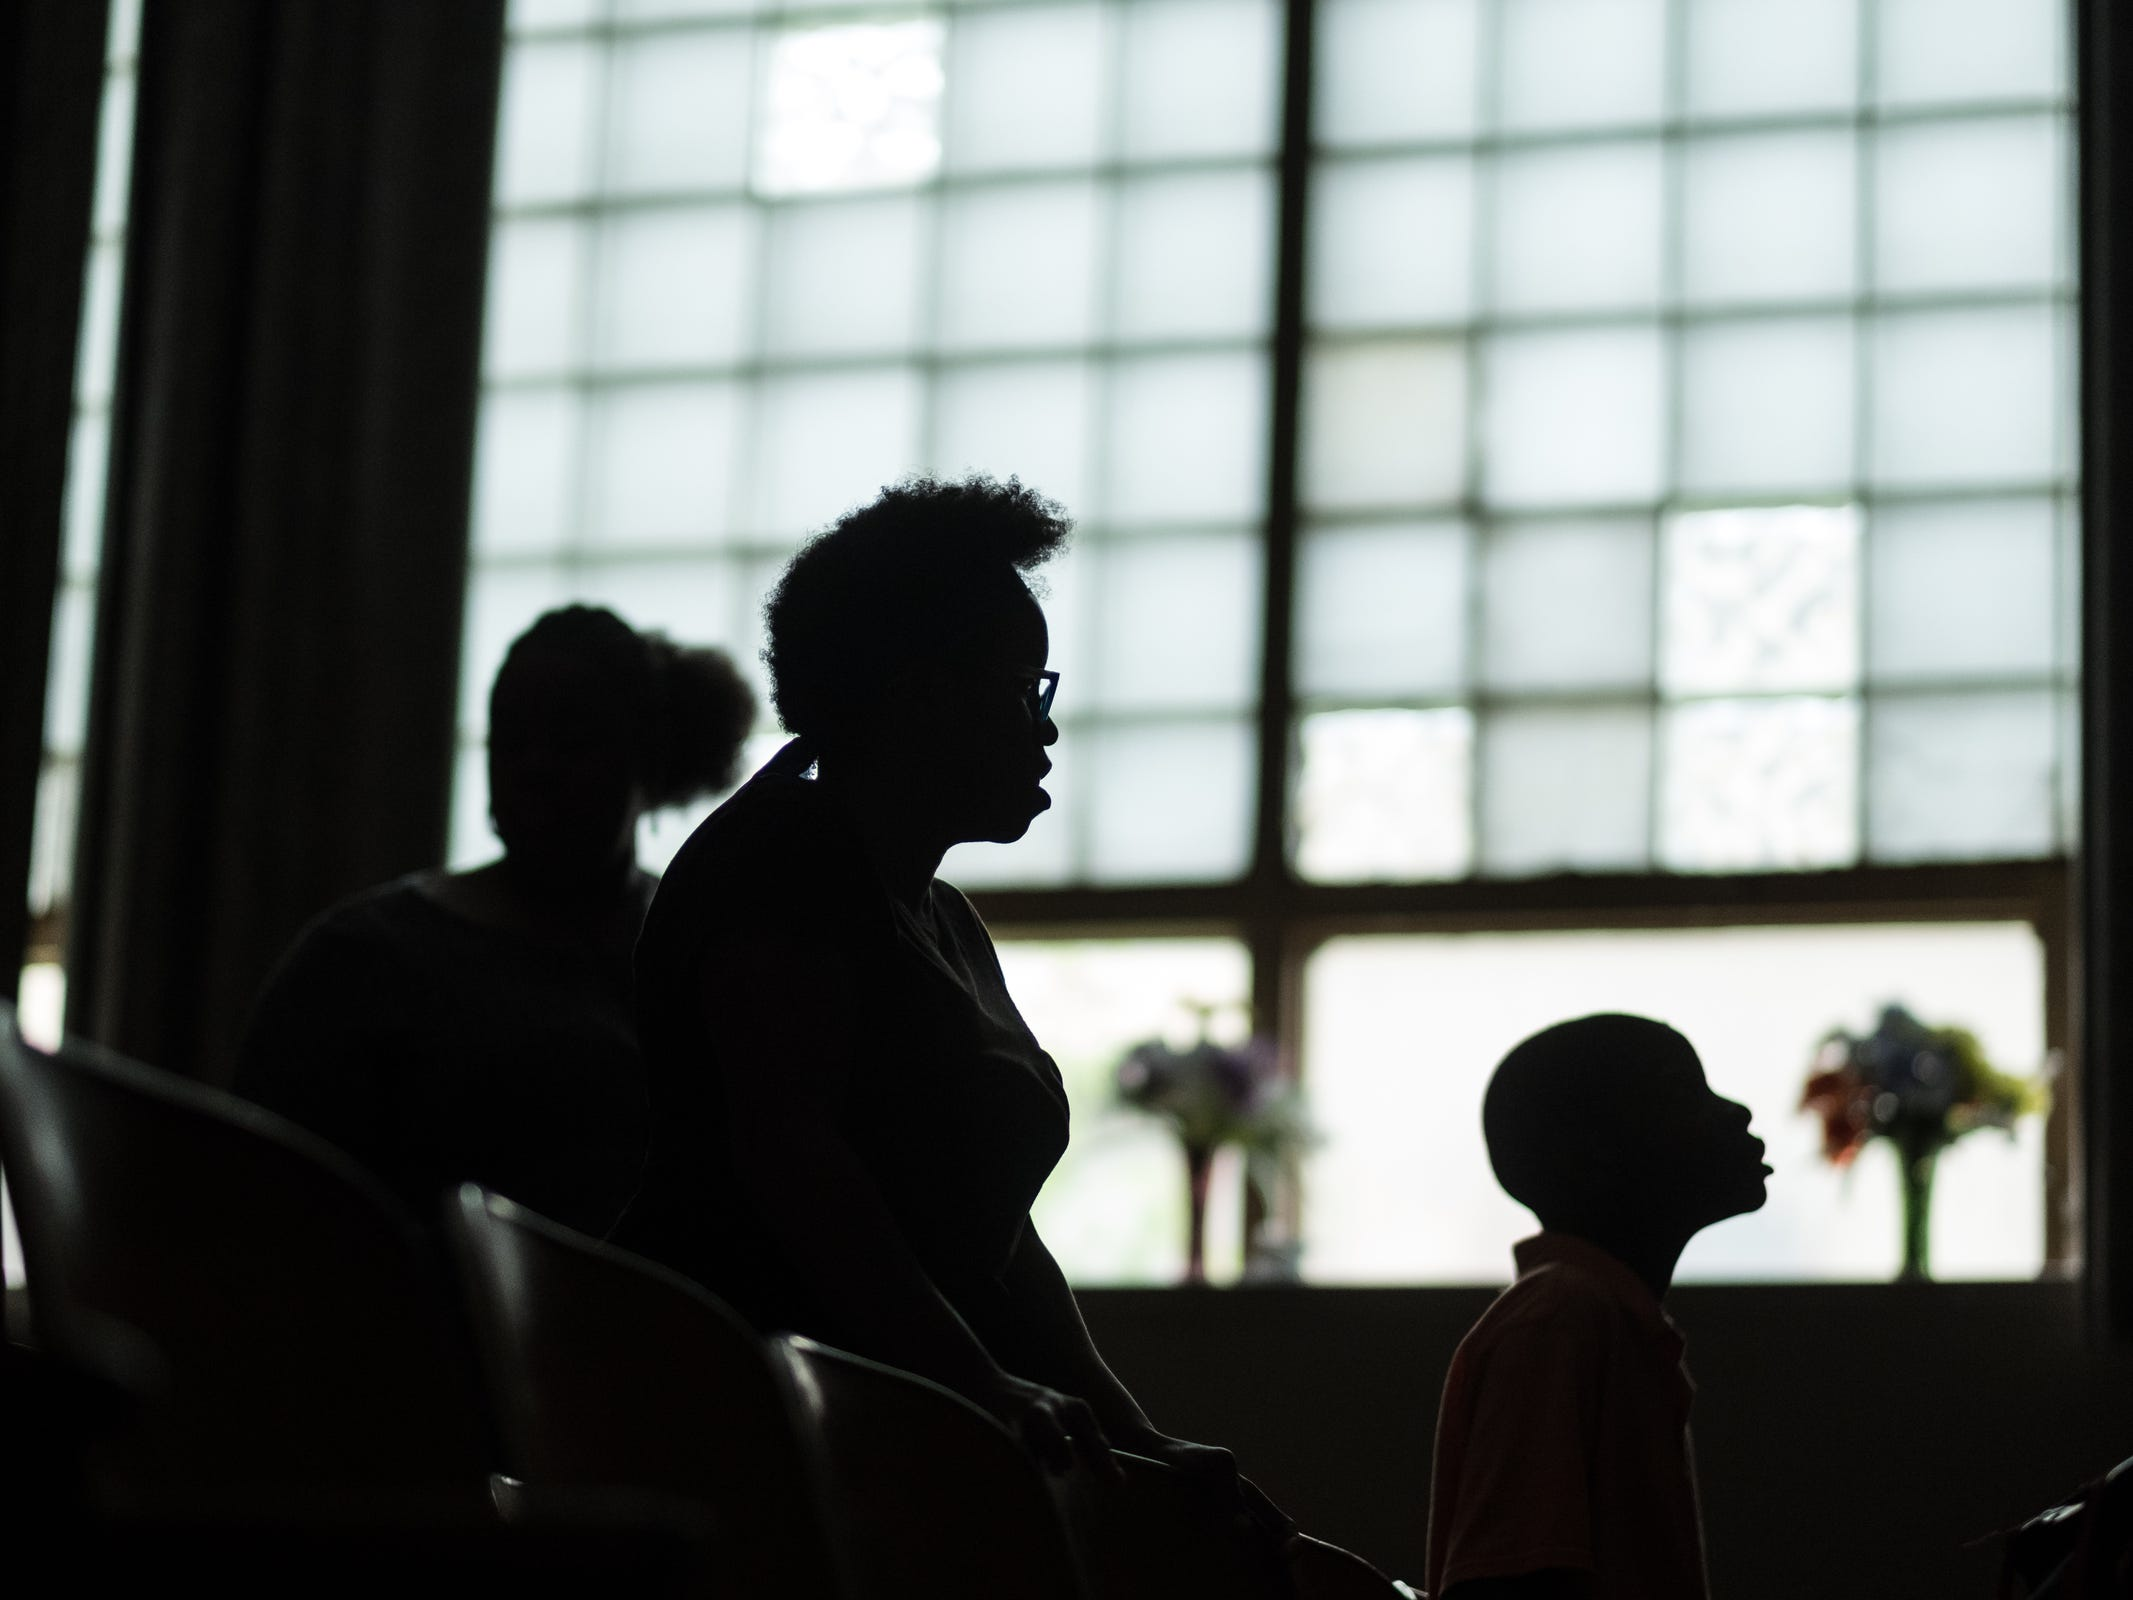 (right to left) Jakson Bell of Detroit, Nakisha Hale of Detroit and Katia Beasley of Detroit are silhouetted while listening to a church service performed by Apostle Michael Beasley on Saturday, June 23, 2018 at True Life Change Ministries in Detroit's west side.